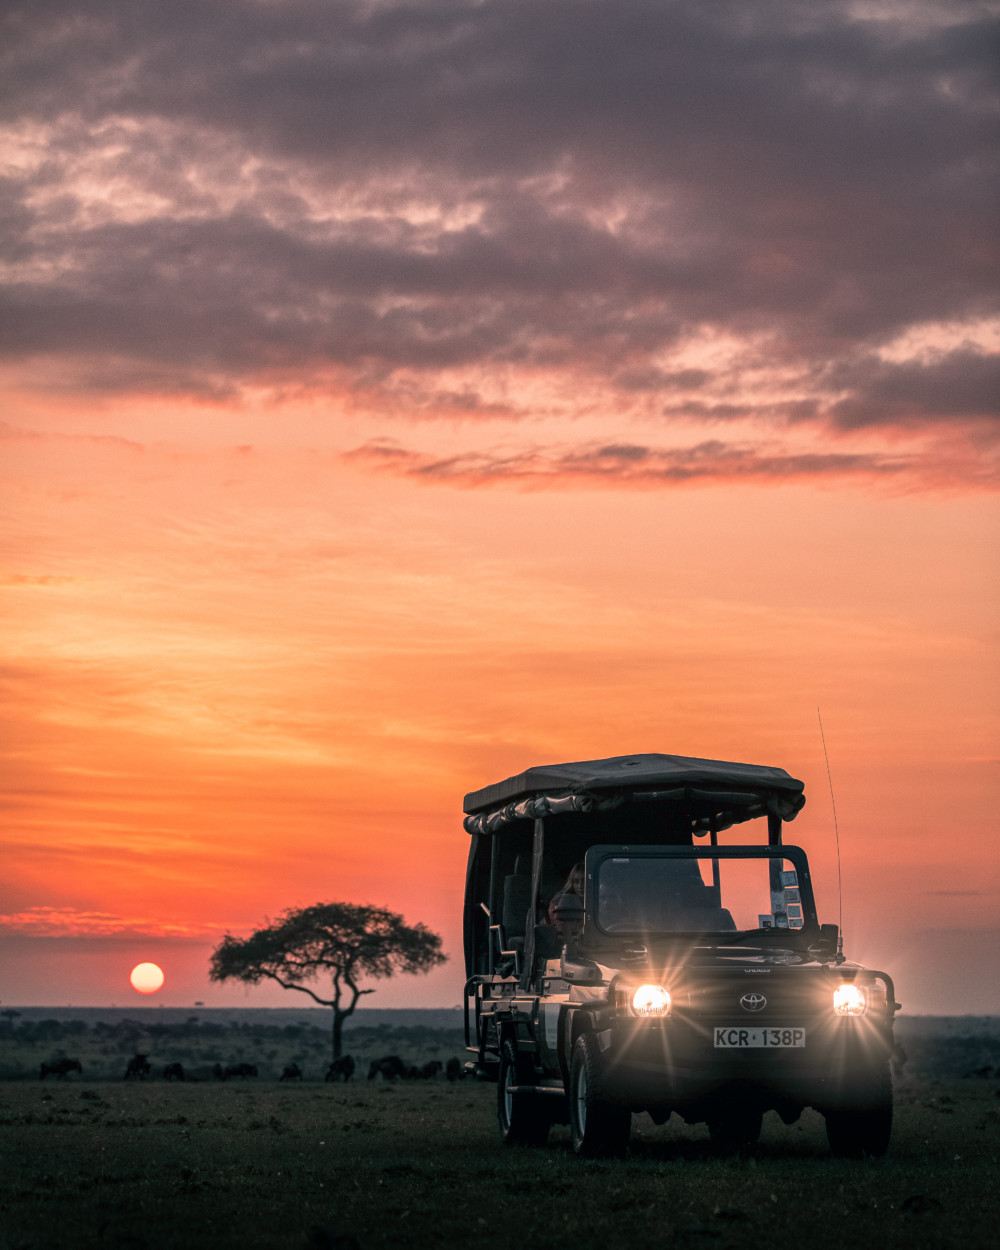 Best Masai Mara Camps for Safari in Kenya